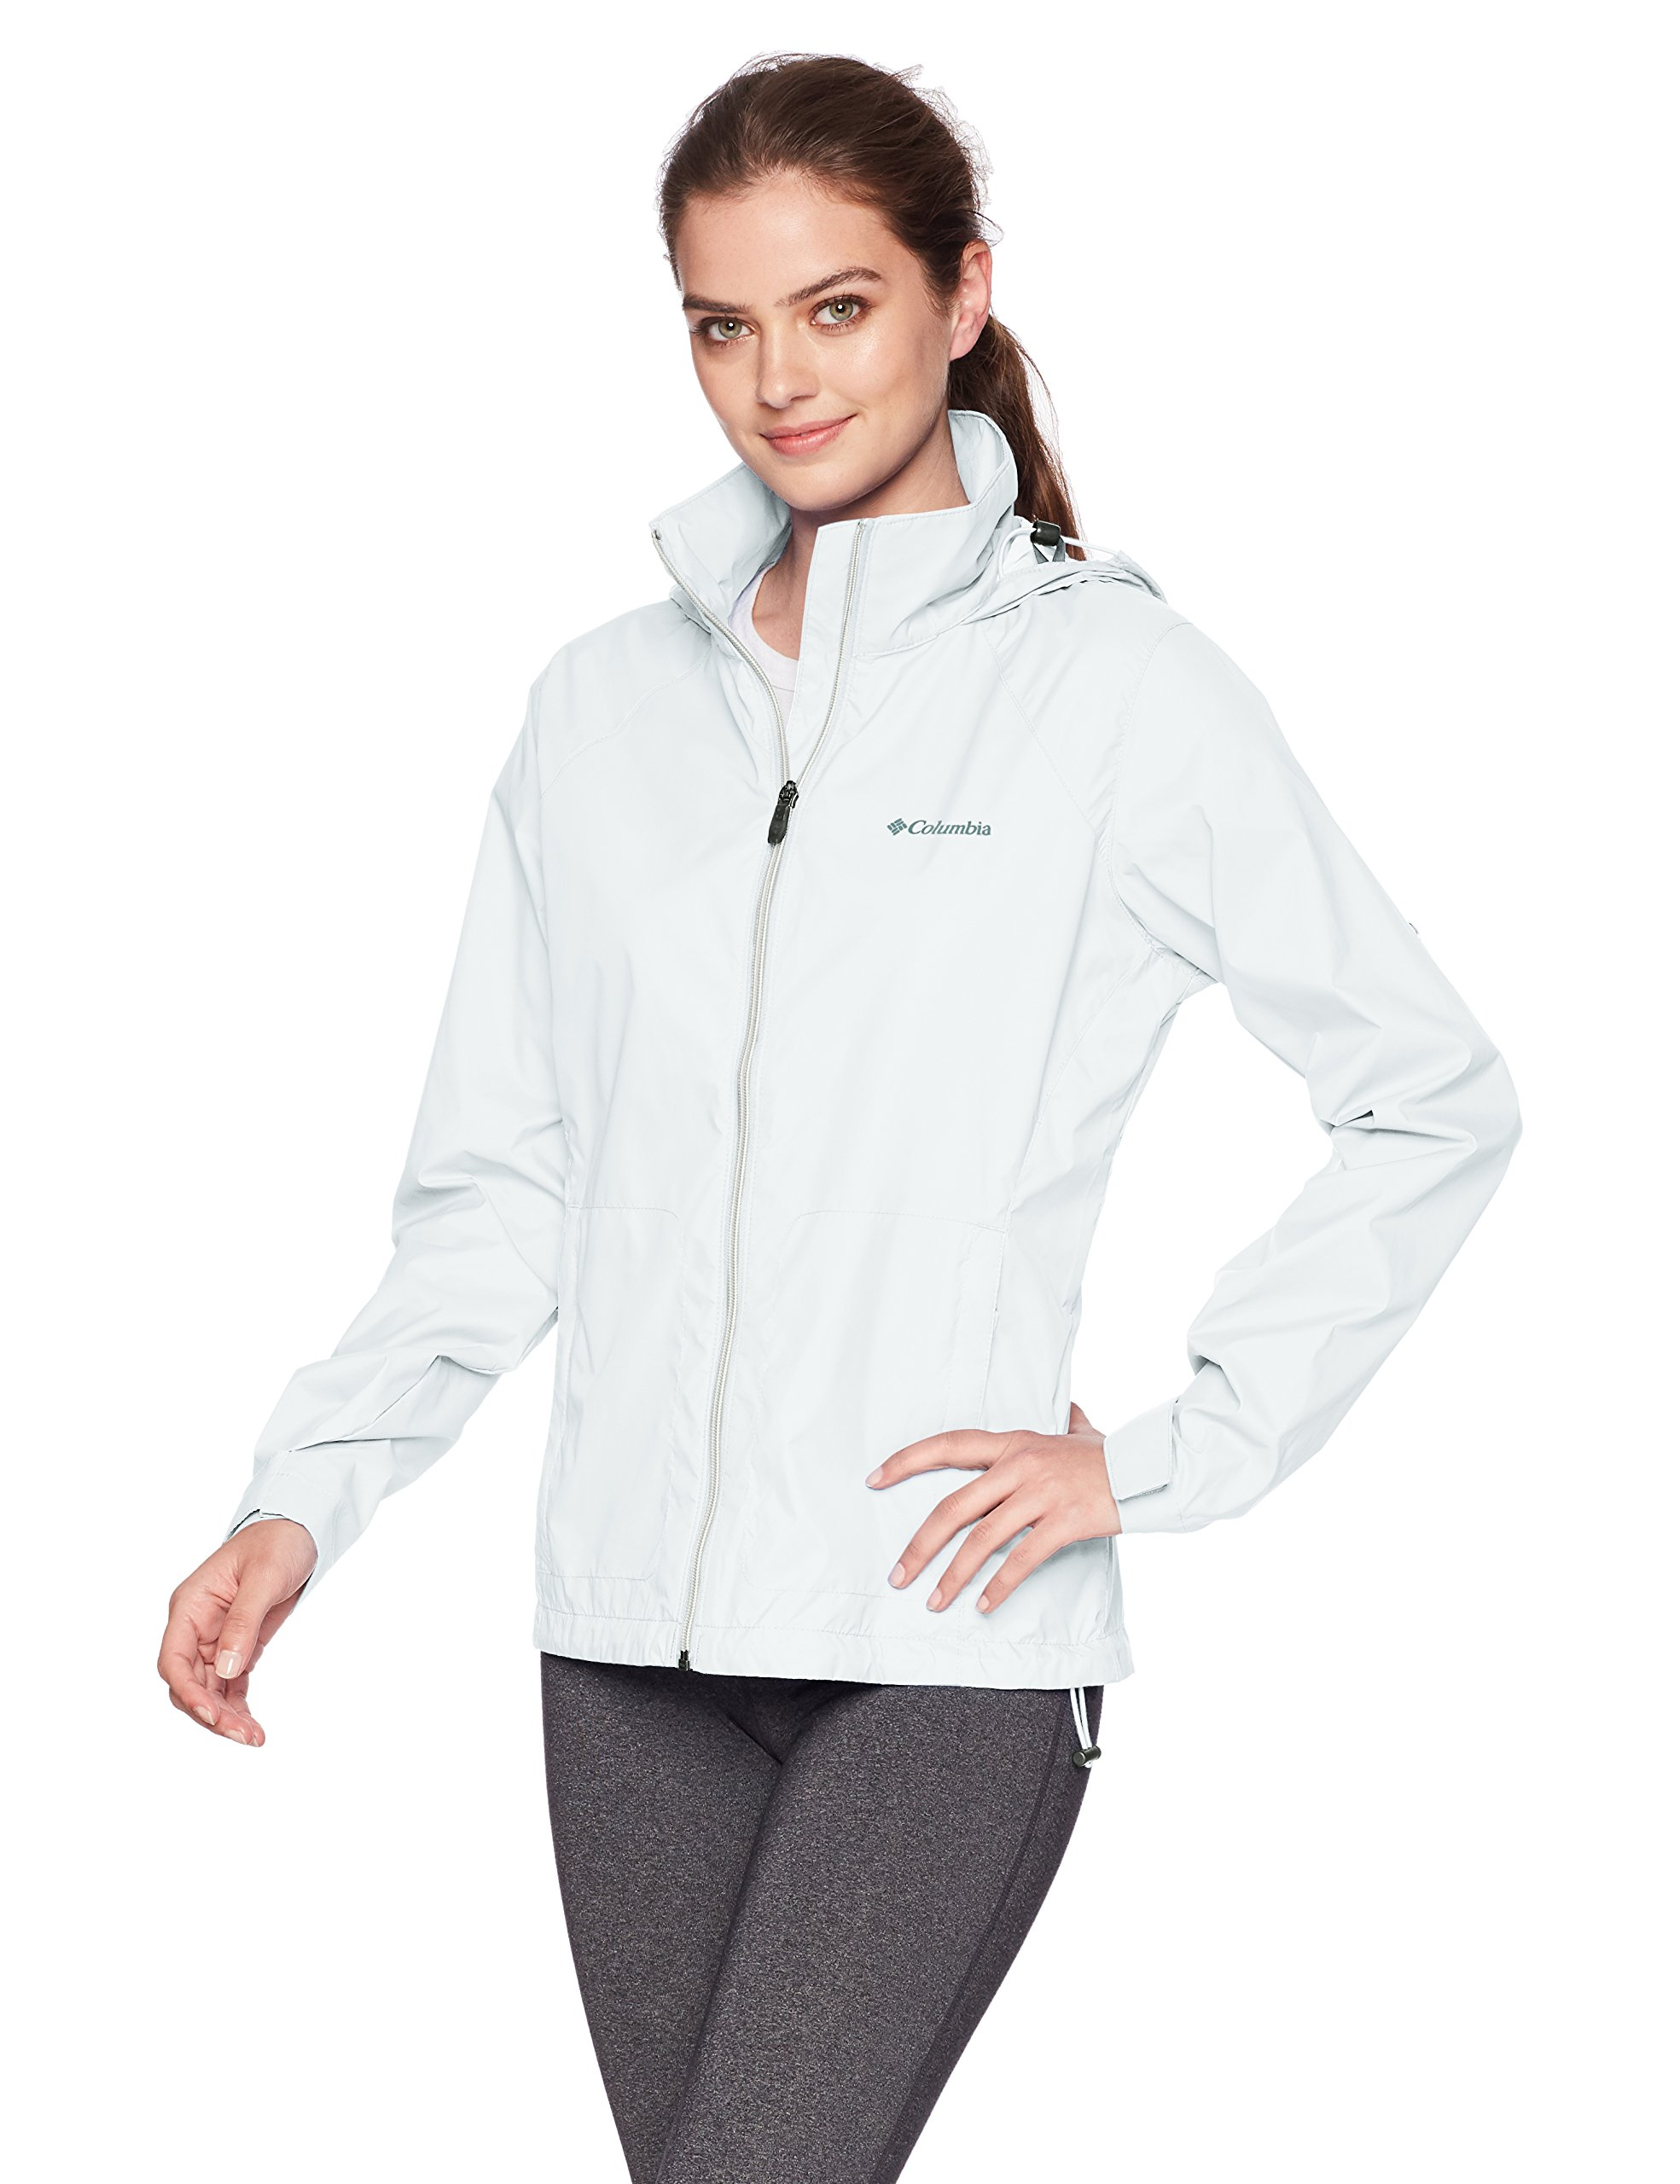 bdf35d1a6 Galleon - Columbia Women's Switchback III Adjustable Waterproof Rain Jacket,  White, Small